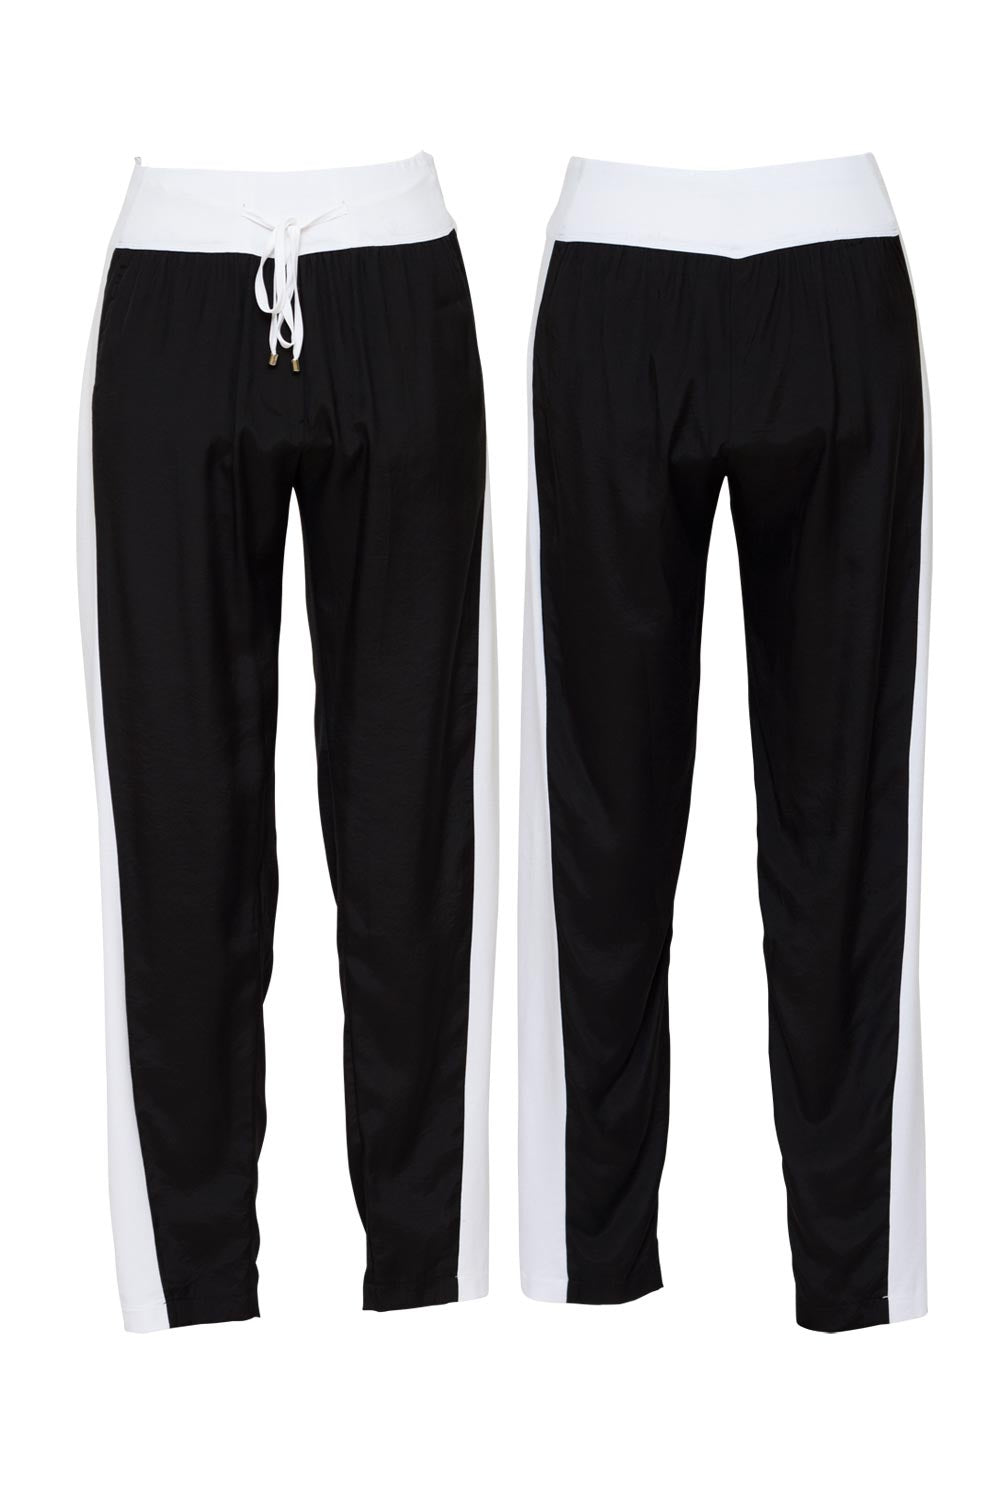 relaxed-by-paula-ryan-stright-leg-lounge-pant